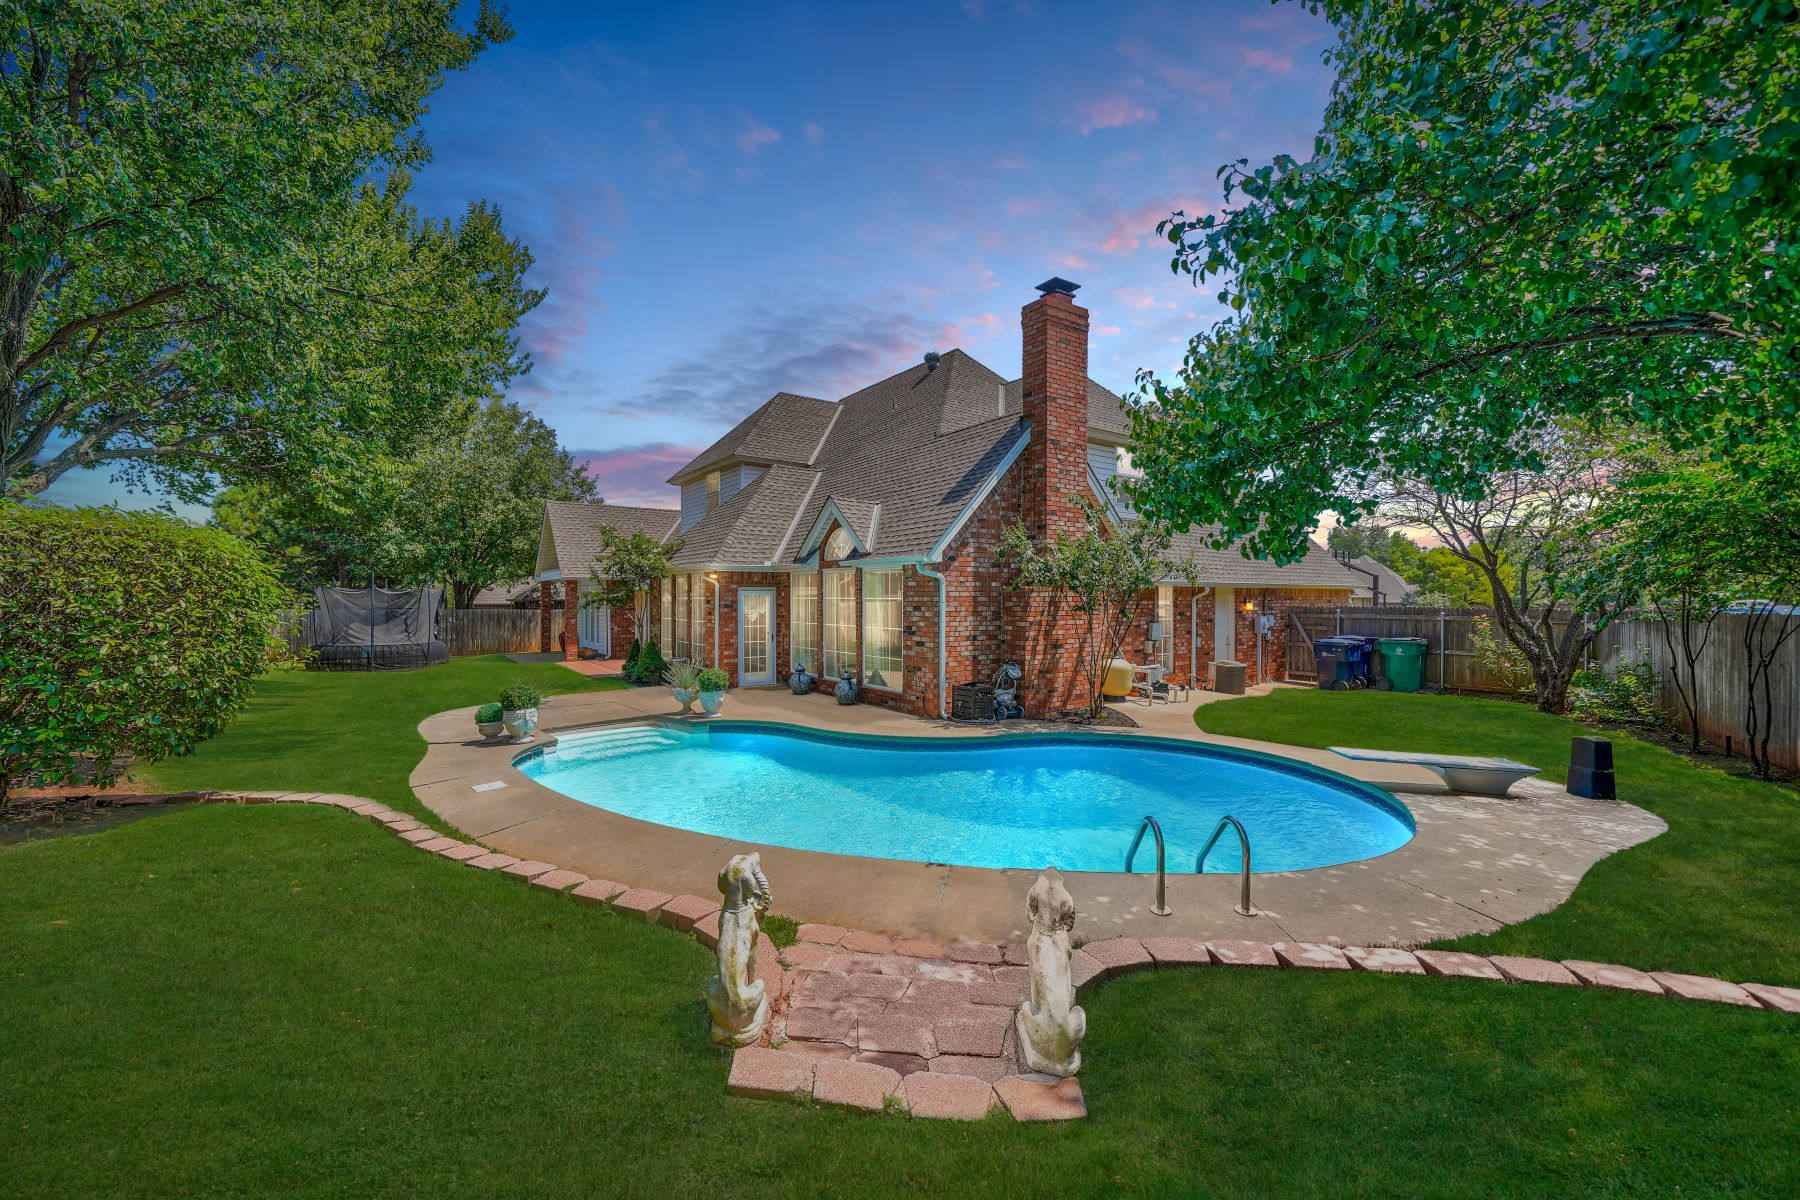 Single Family Homes for Active at Unique and Unexpected Home with a Pool 12009 Rosemeade Court Oklahoma City, Oklahoma 73162 United States